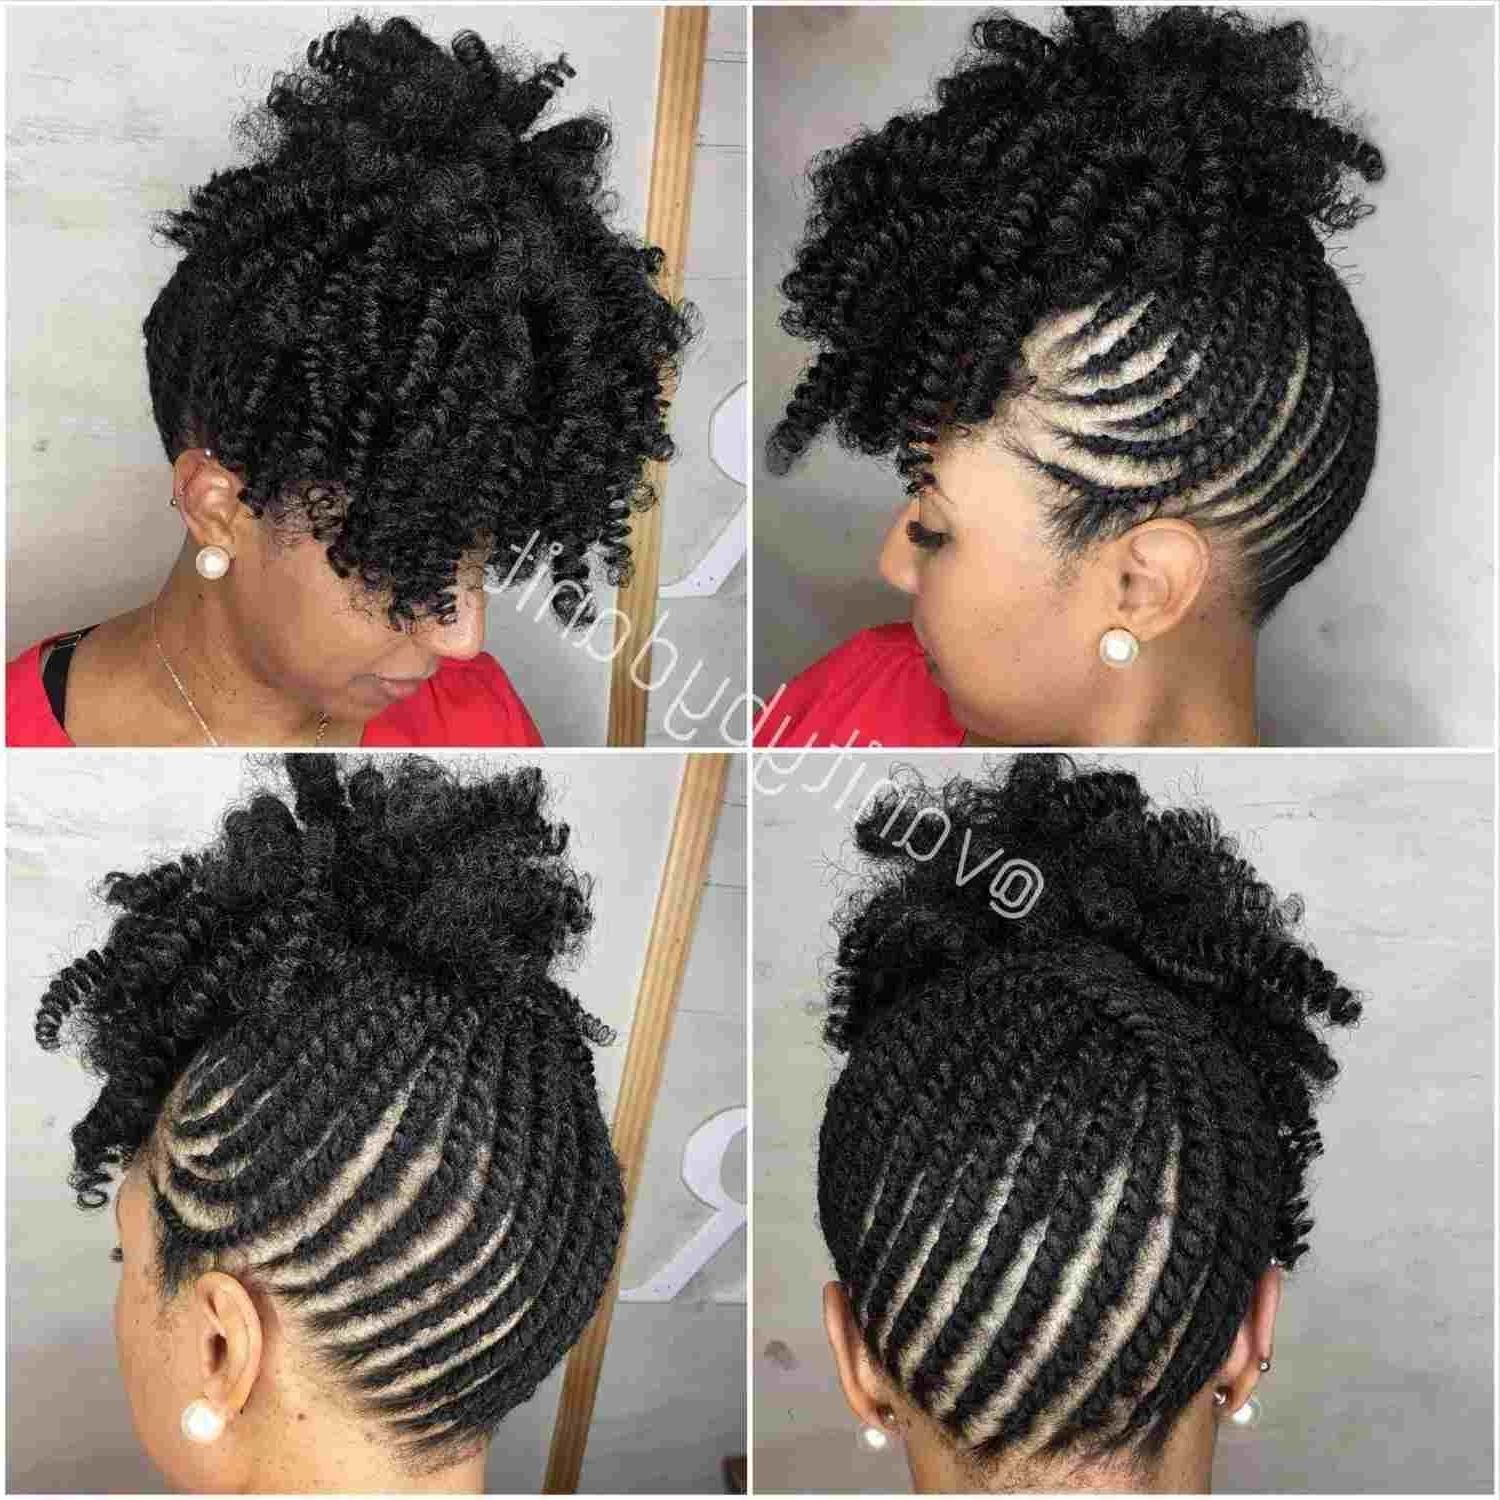 Best And Newest Braided Ponytail Mohawk Hairstyles In Hairstyles For Girls With Rhhairideasstylesinfo Mohawk Natural Braid (View 6 of 20)